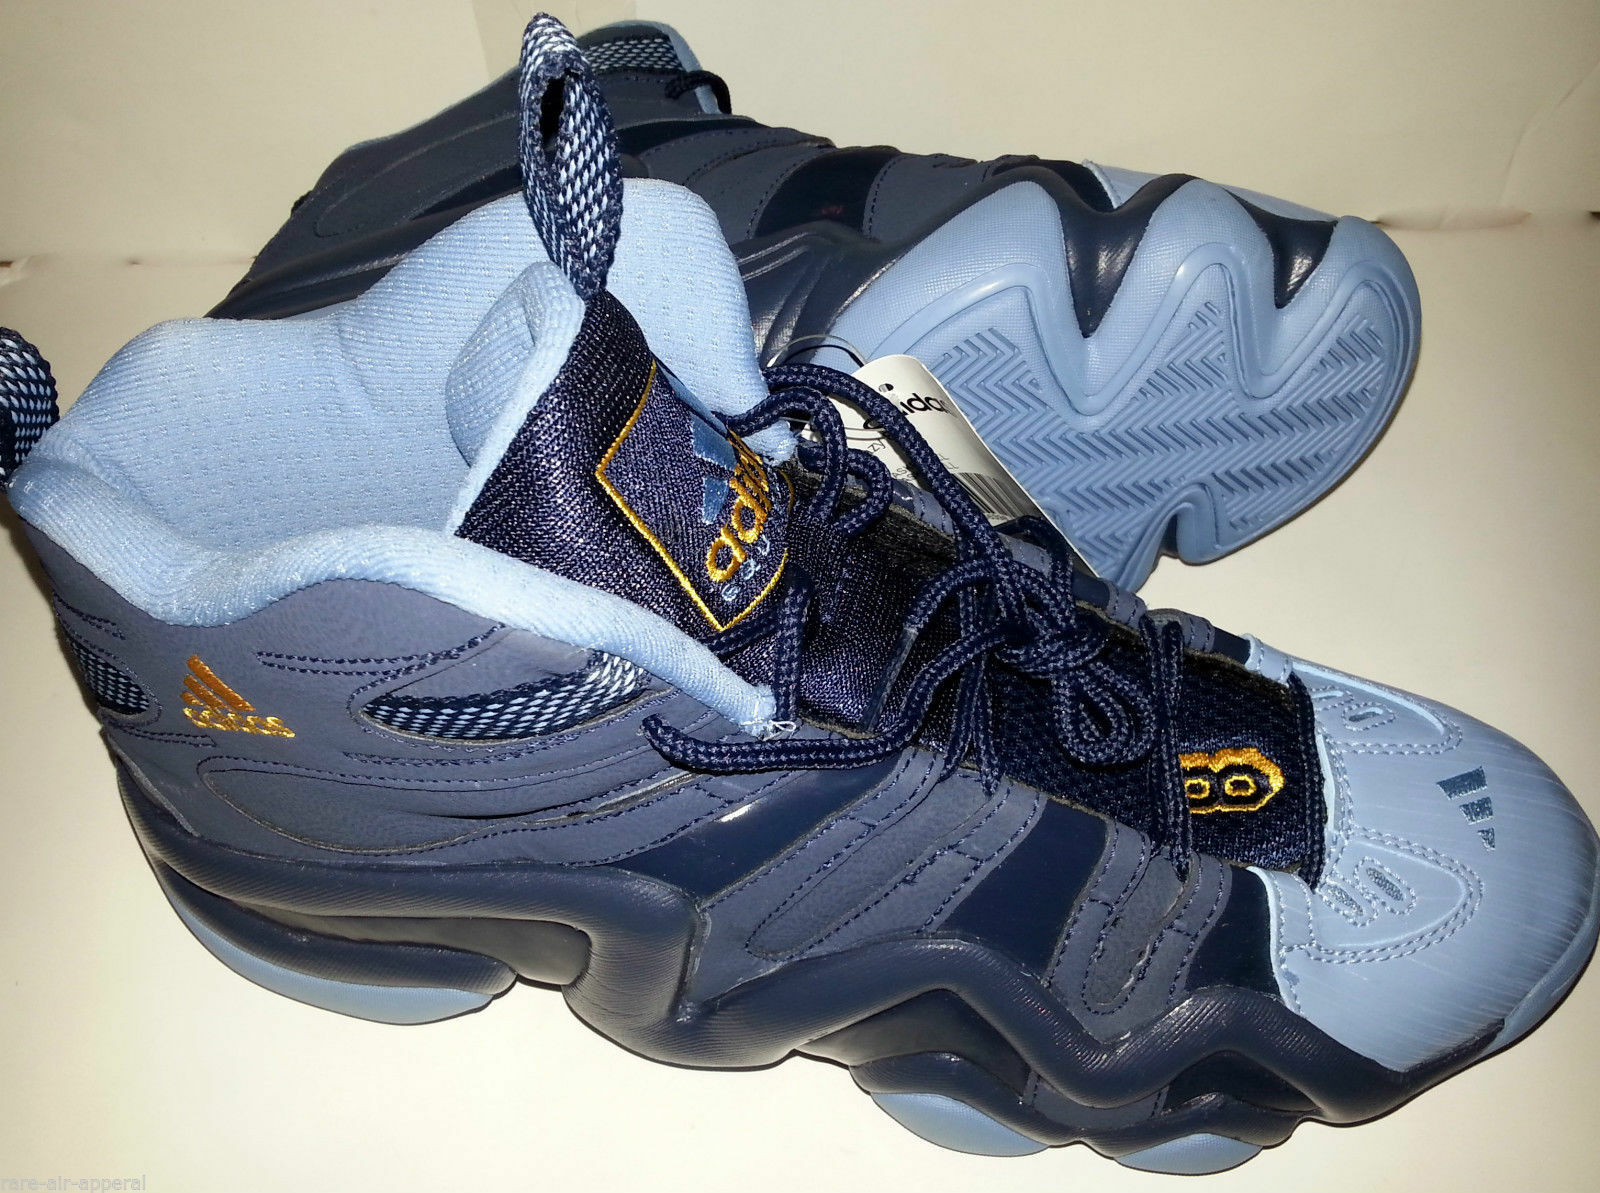 ADIDAS CRAZY 8 KOBE MEMPHIS GRIZZLIES Nuggets Nuggets Nuggets BLUE/GOLD BASKETBALL SHOES 9f96c9